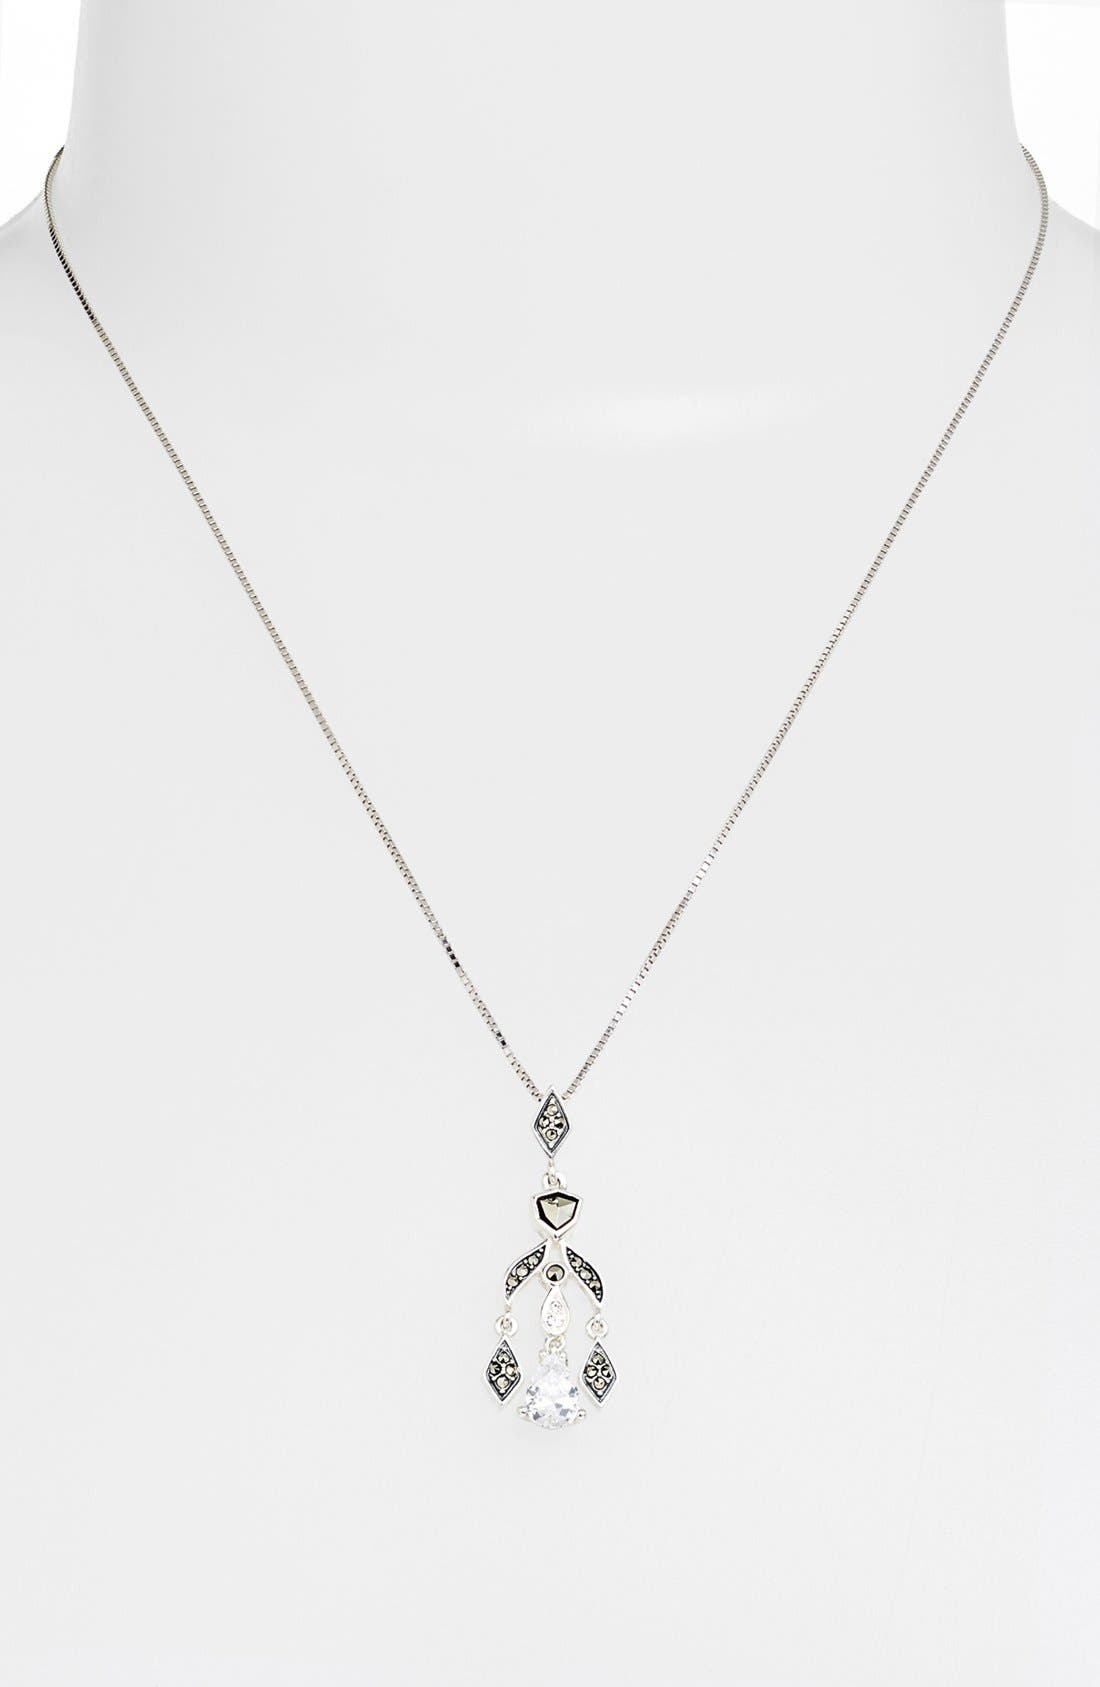 Alternate Image 1 Selected - Judith Jack 'Party Ears' Chandelier Pendant Necklace